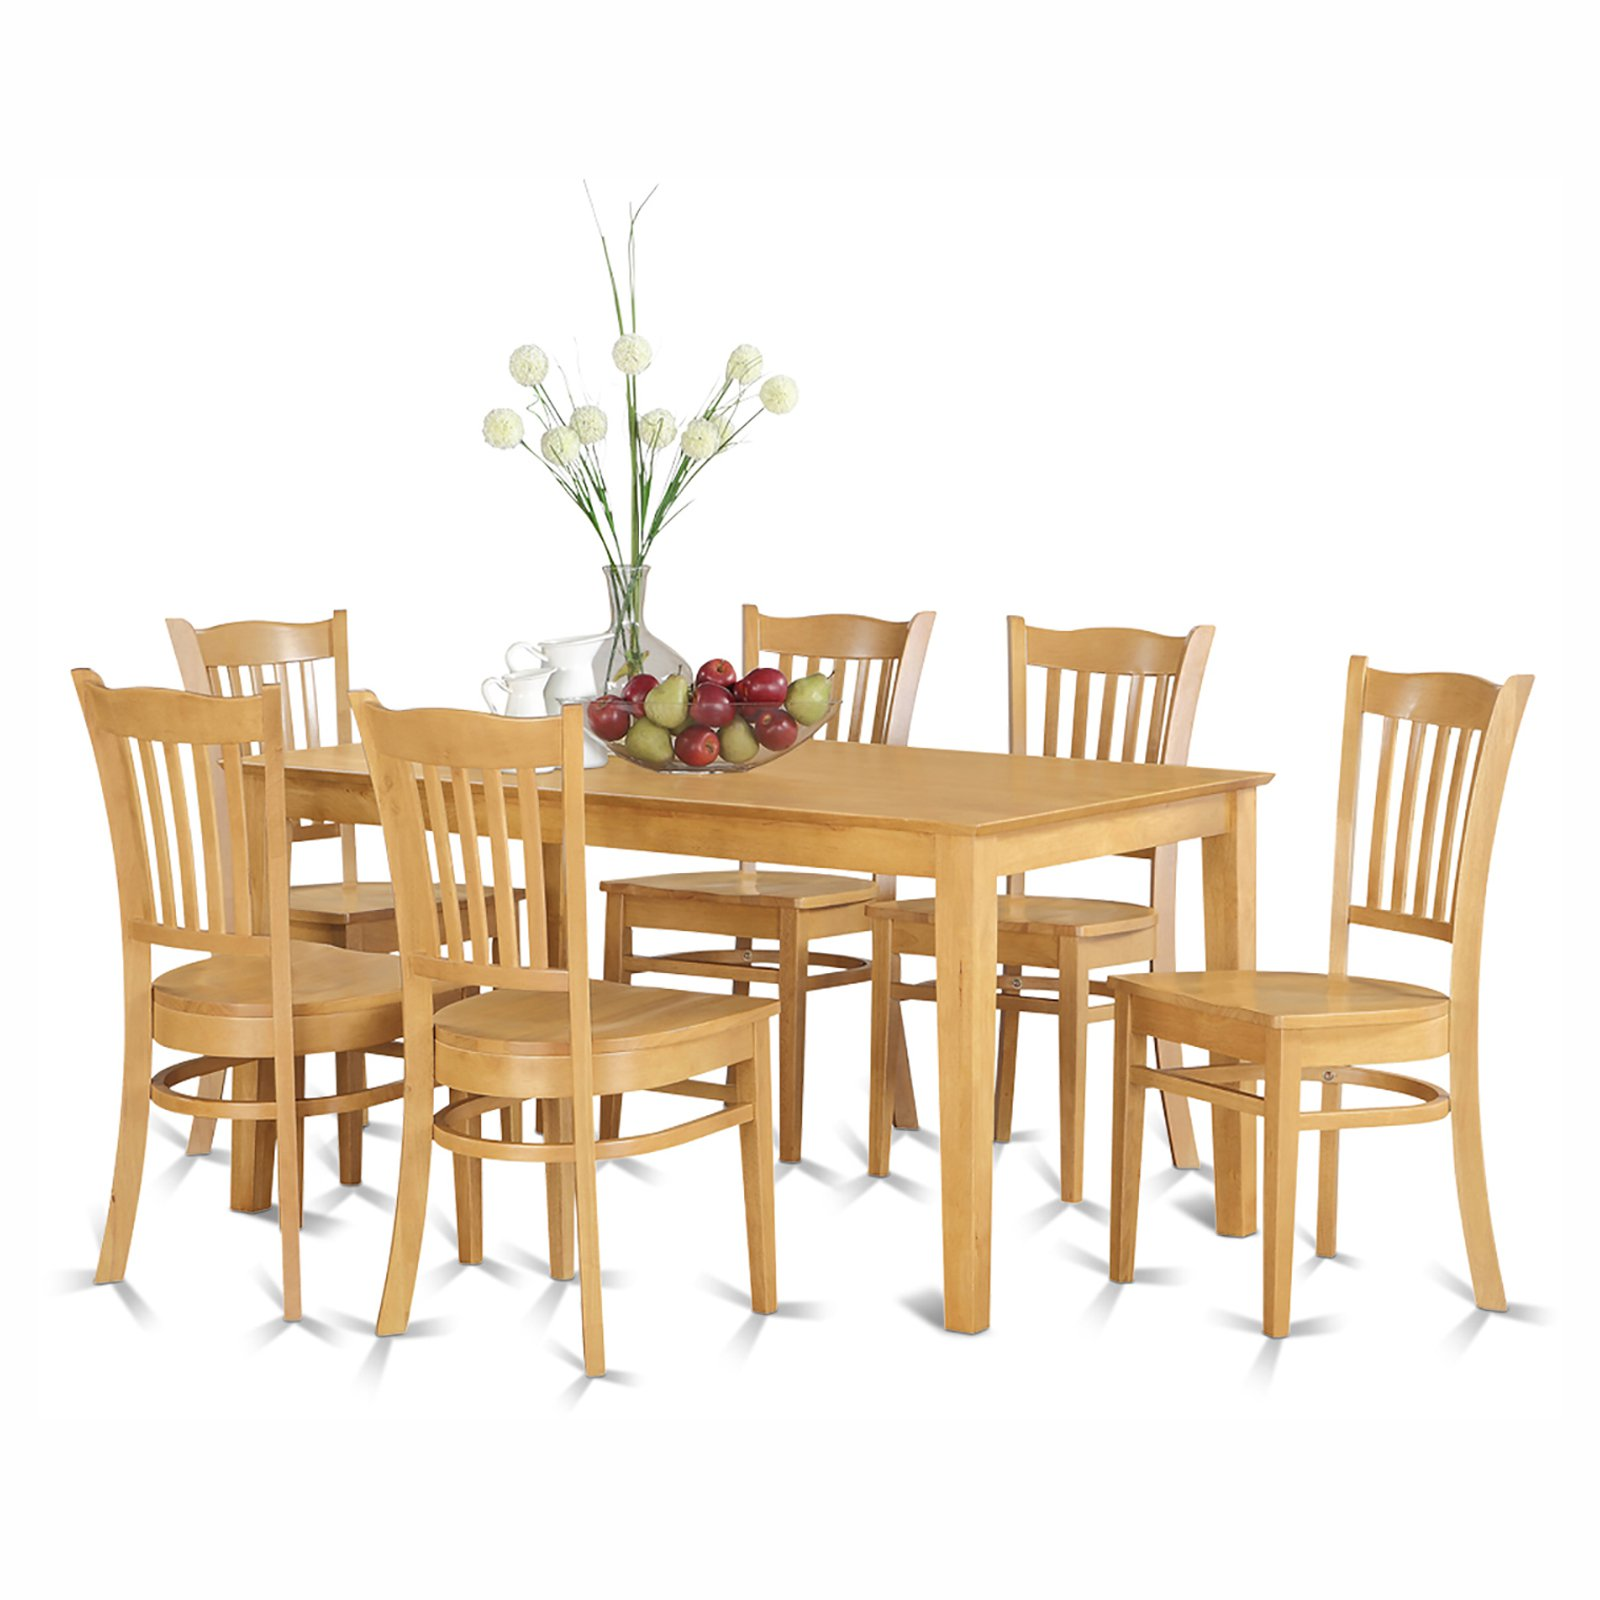 East West Furniture Capris 7 Piece Rectangular Dining Table Set with Groton Wooden Seat Chairs